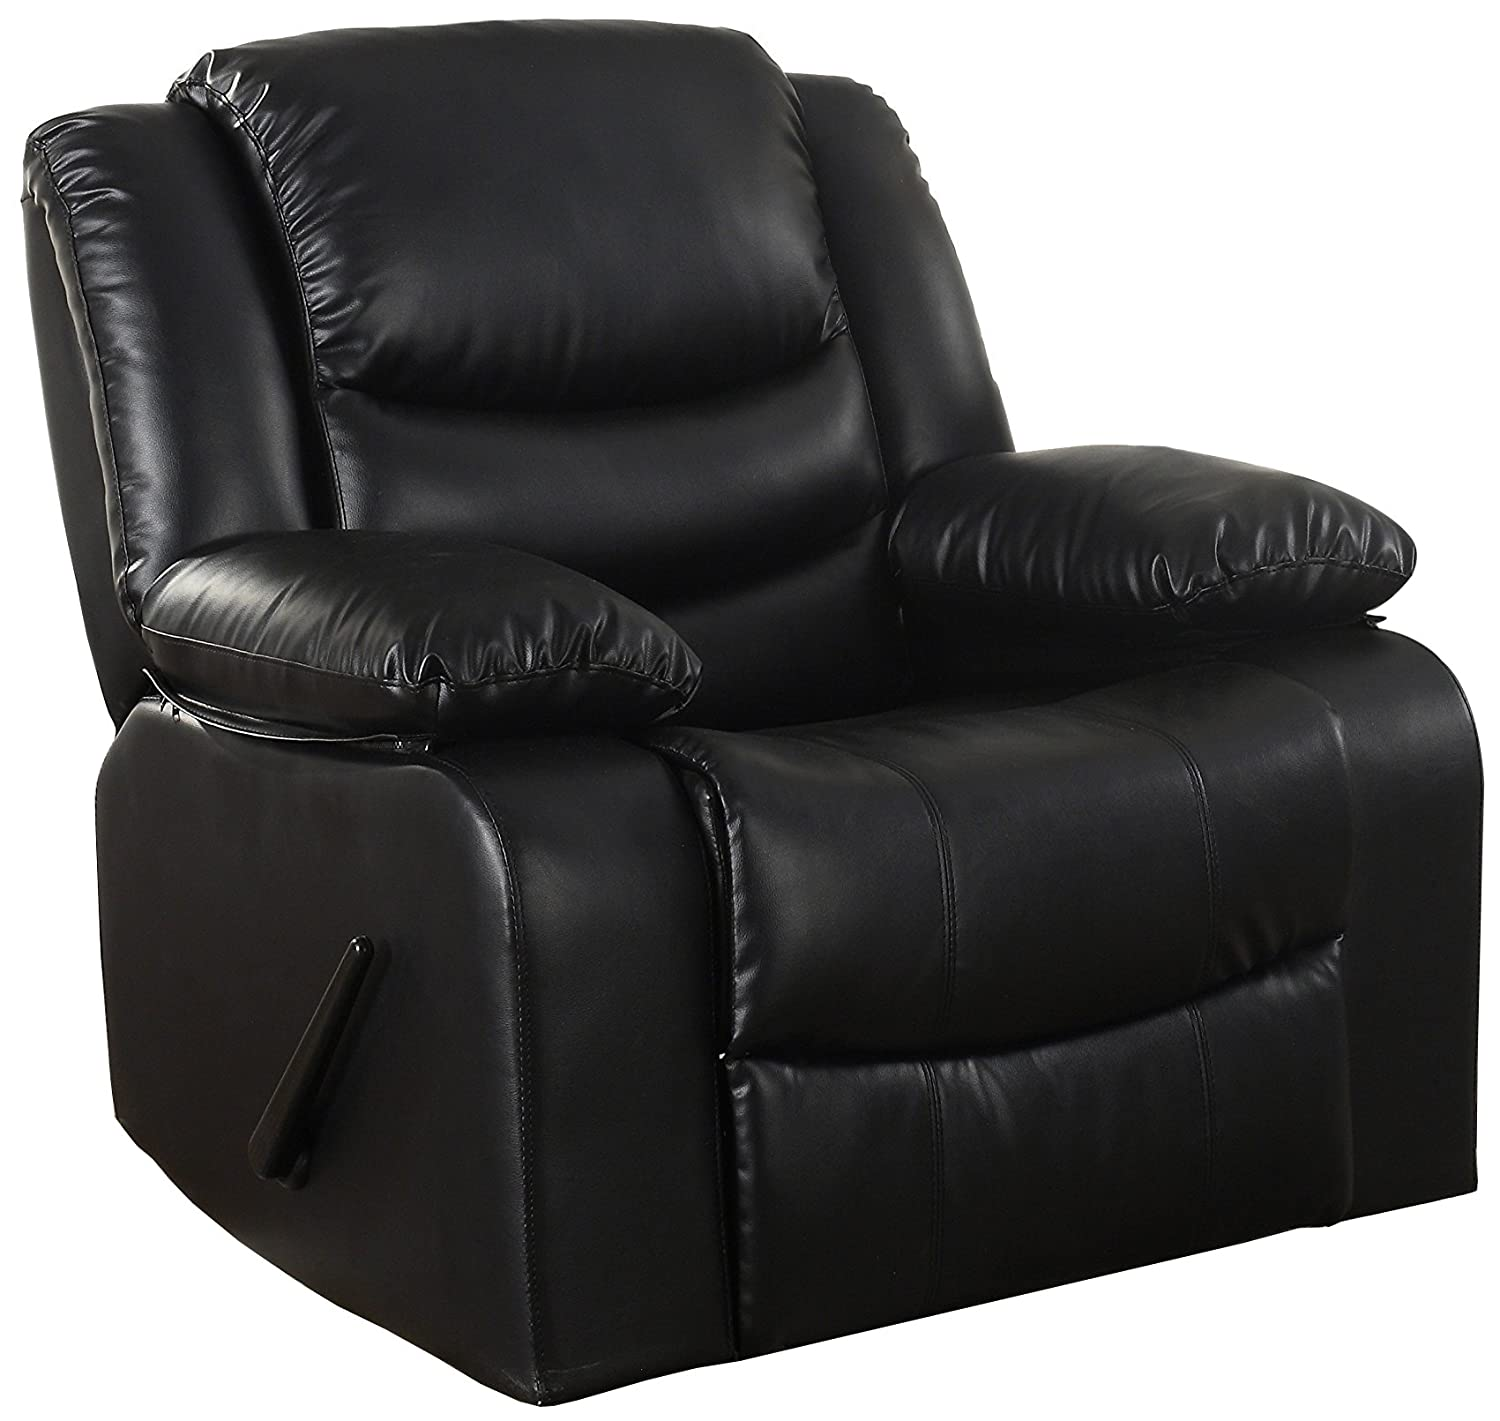 Charmant Amazon.com: Bonded Leather Rocker Recliner Living Room Chair (Brown):  Kitchen U0026 Dining